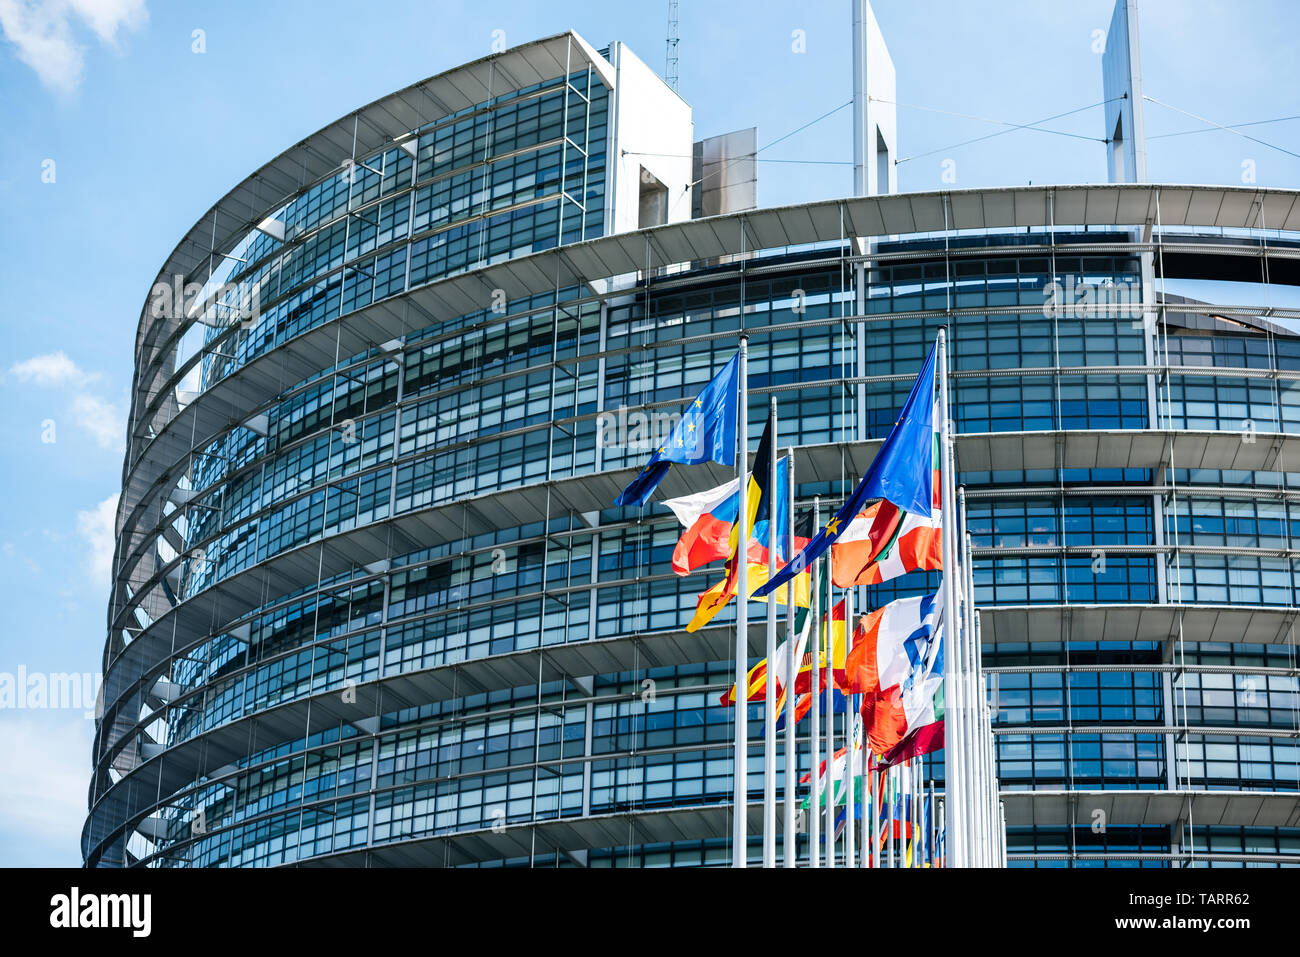 Flags of European Union and member states waving in calm wind in front of the Parliament headquarter on the day of 2019 European Parliament election - Stock Image